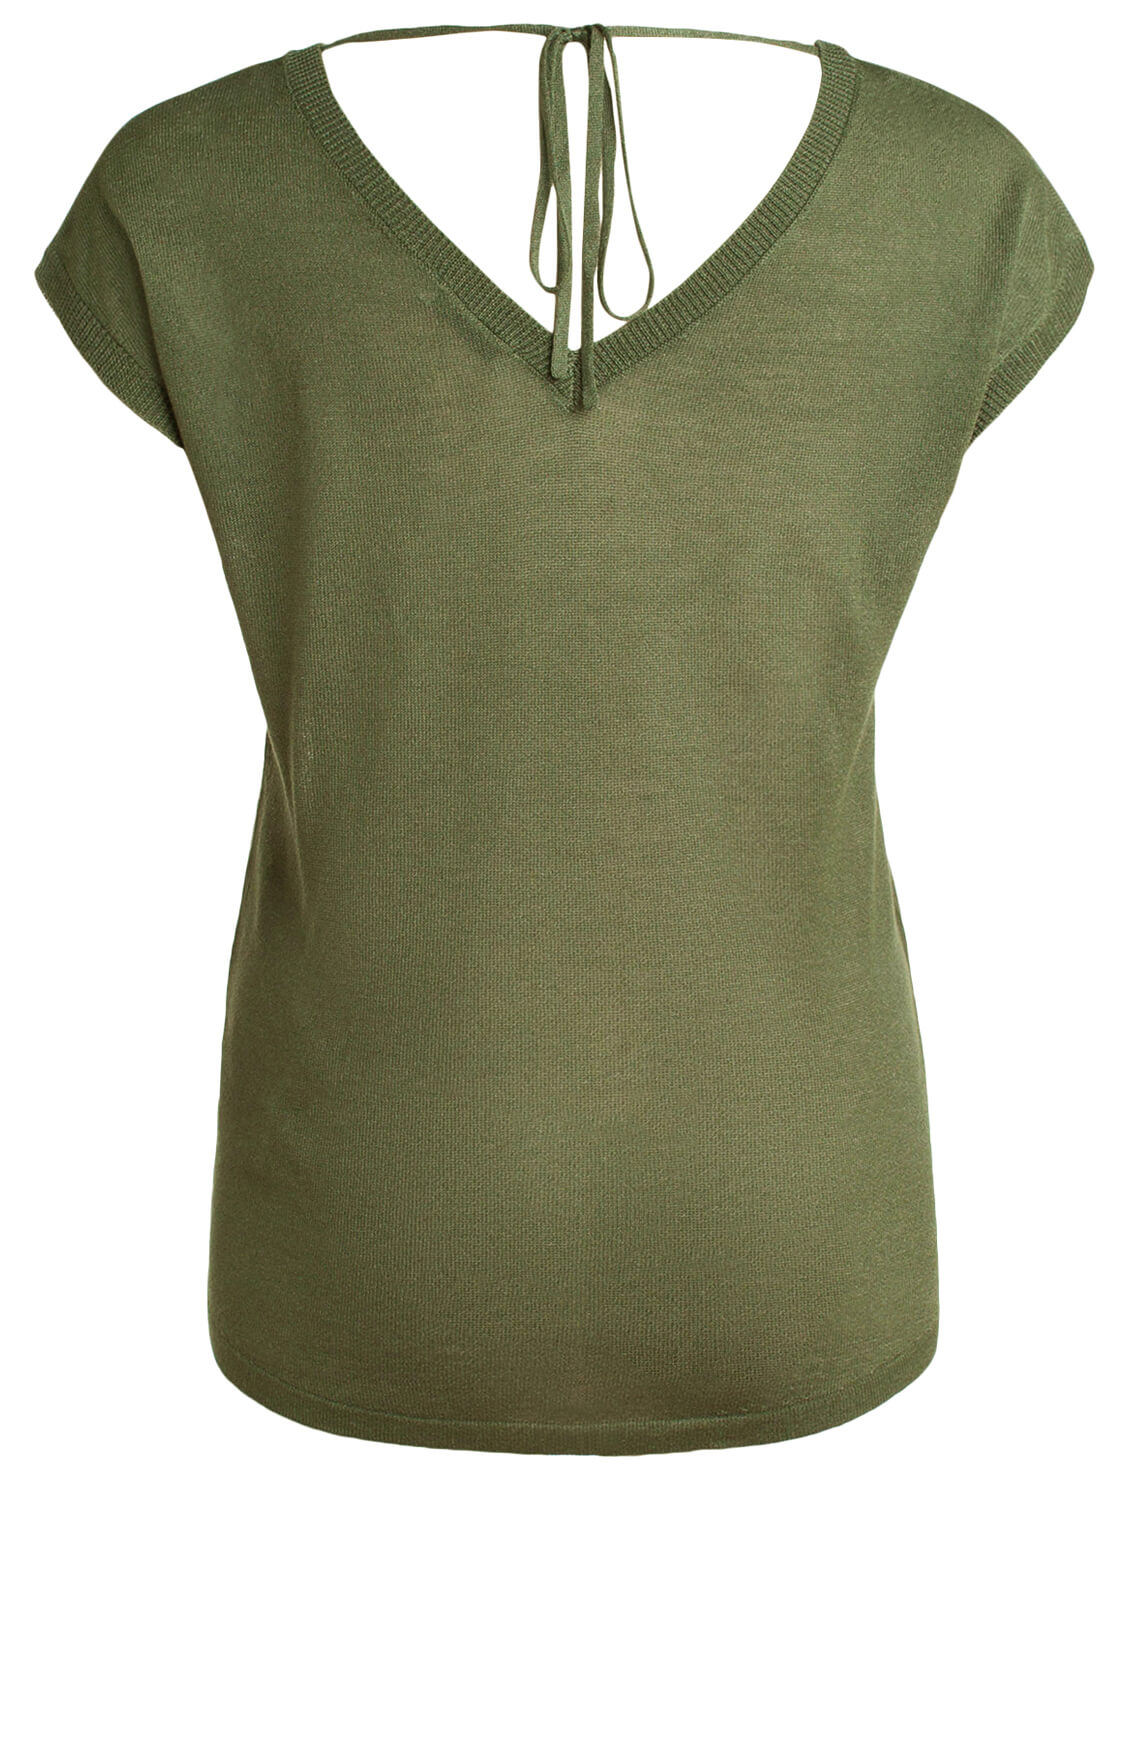 Anna Dames Shirt met strikdetail groen